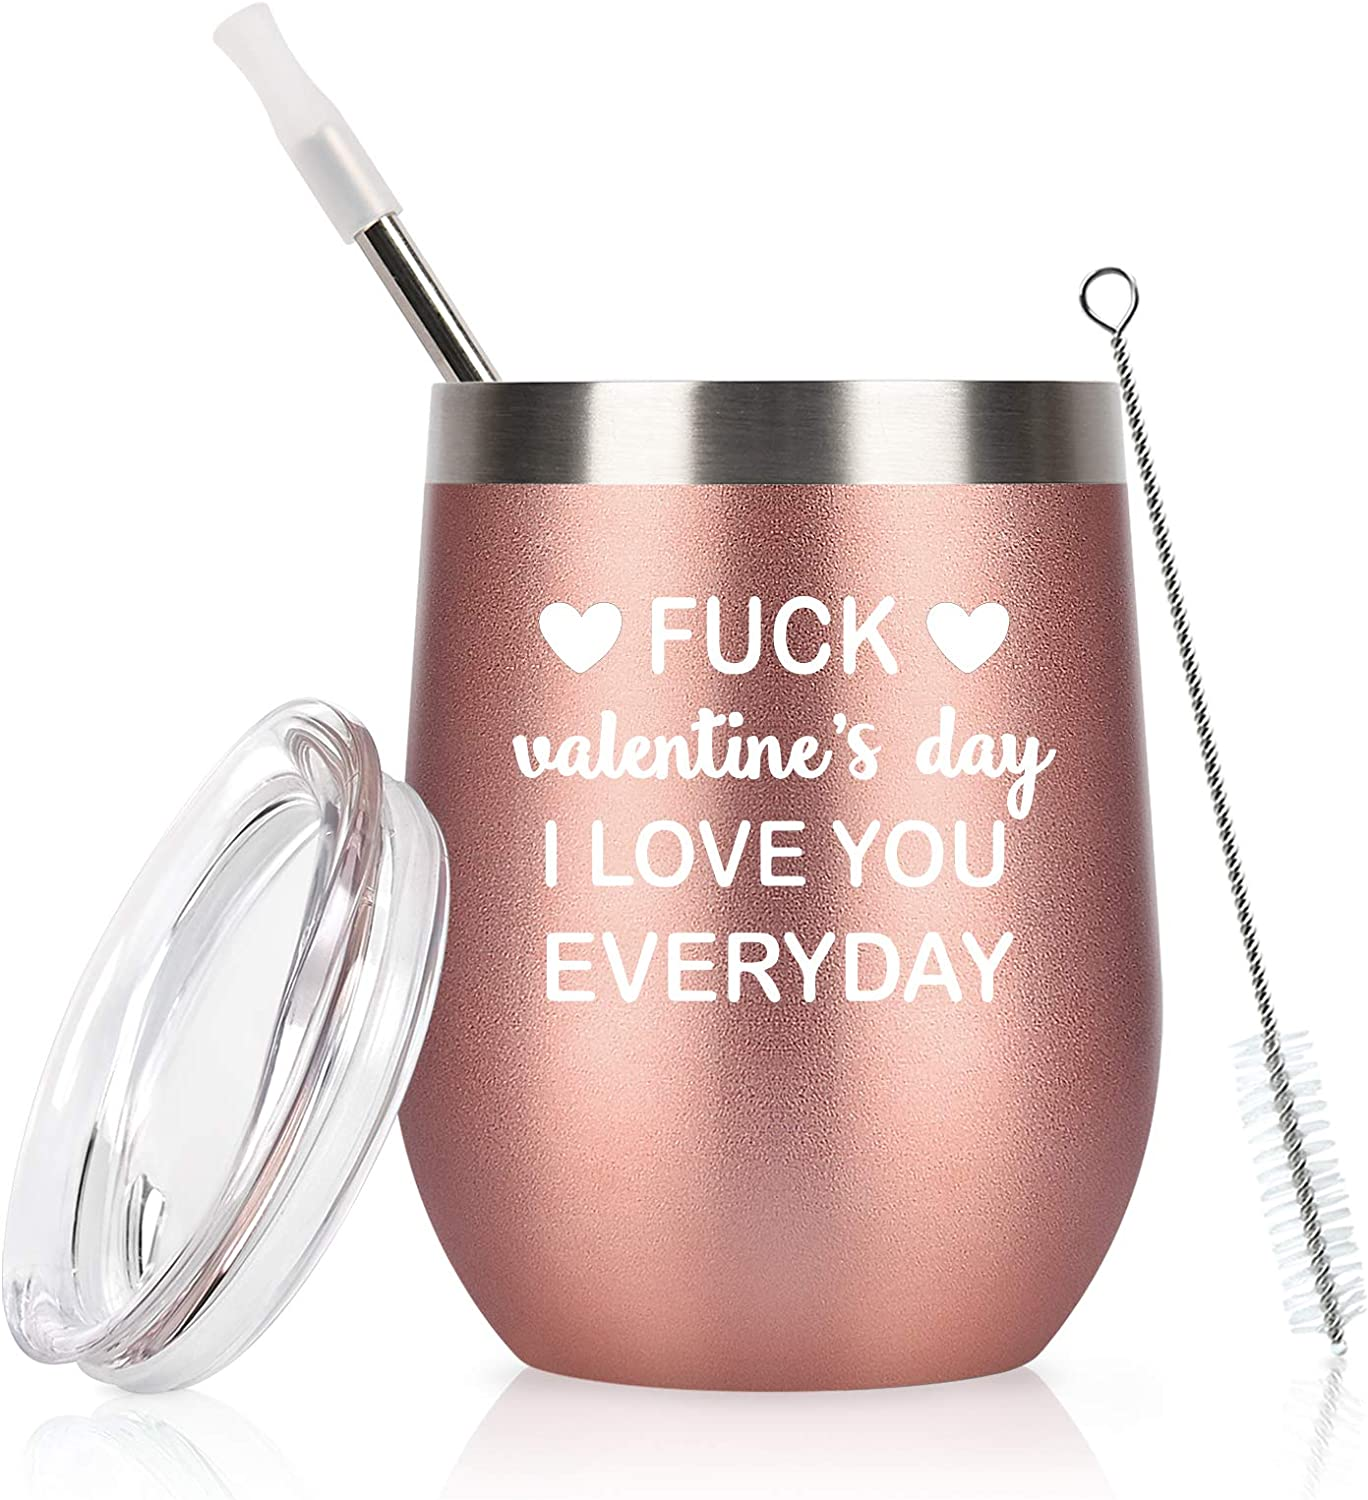 Gingprous Funny Valentine's Day Gift for Girlfriend Wifey Wife Lover Women Her Bride to Be, I Love You Everyday Stainless Steel Wine Tumbler with Lid and Straw(12 Oz, Rose Gold)